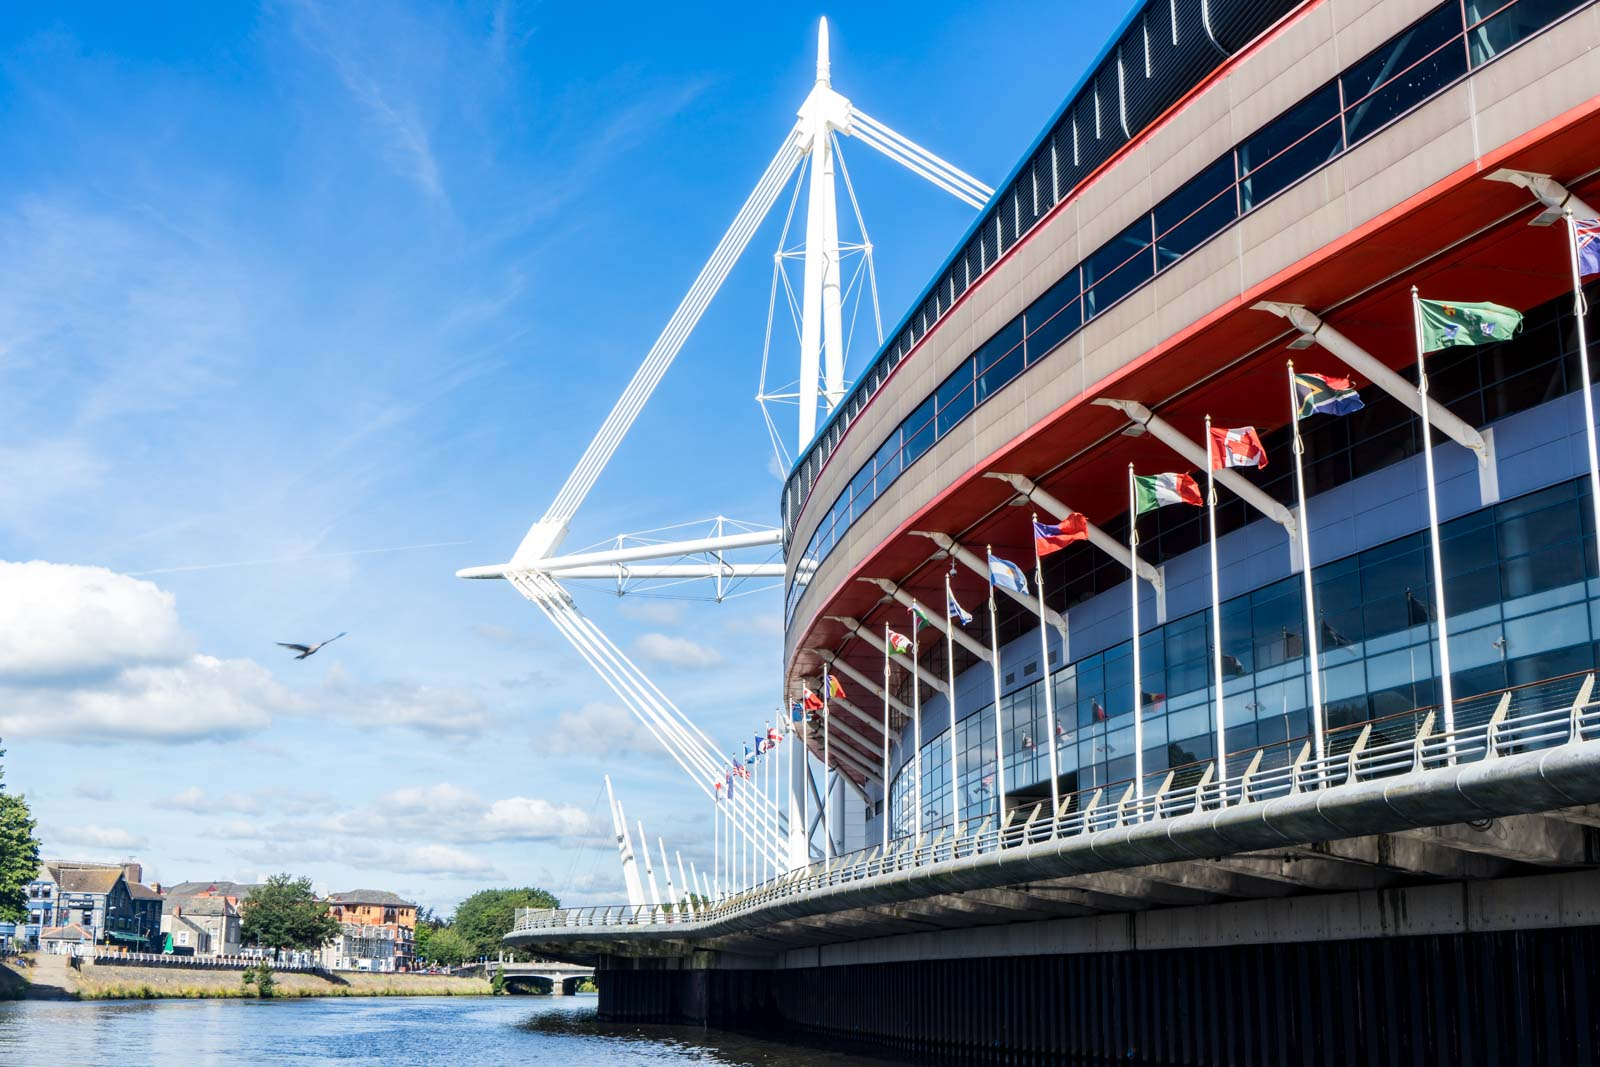 Visit Cardiff's modern history, Wales